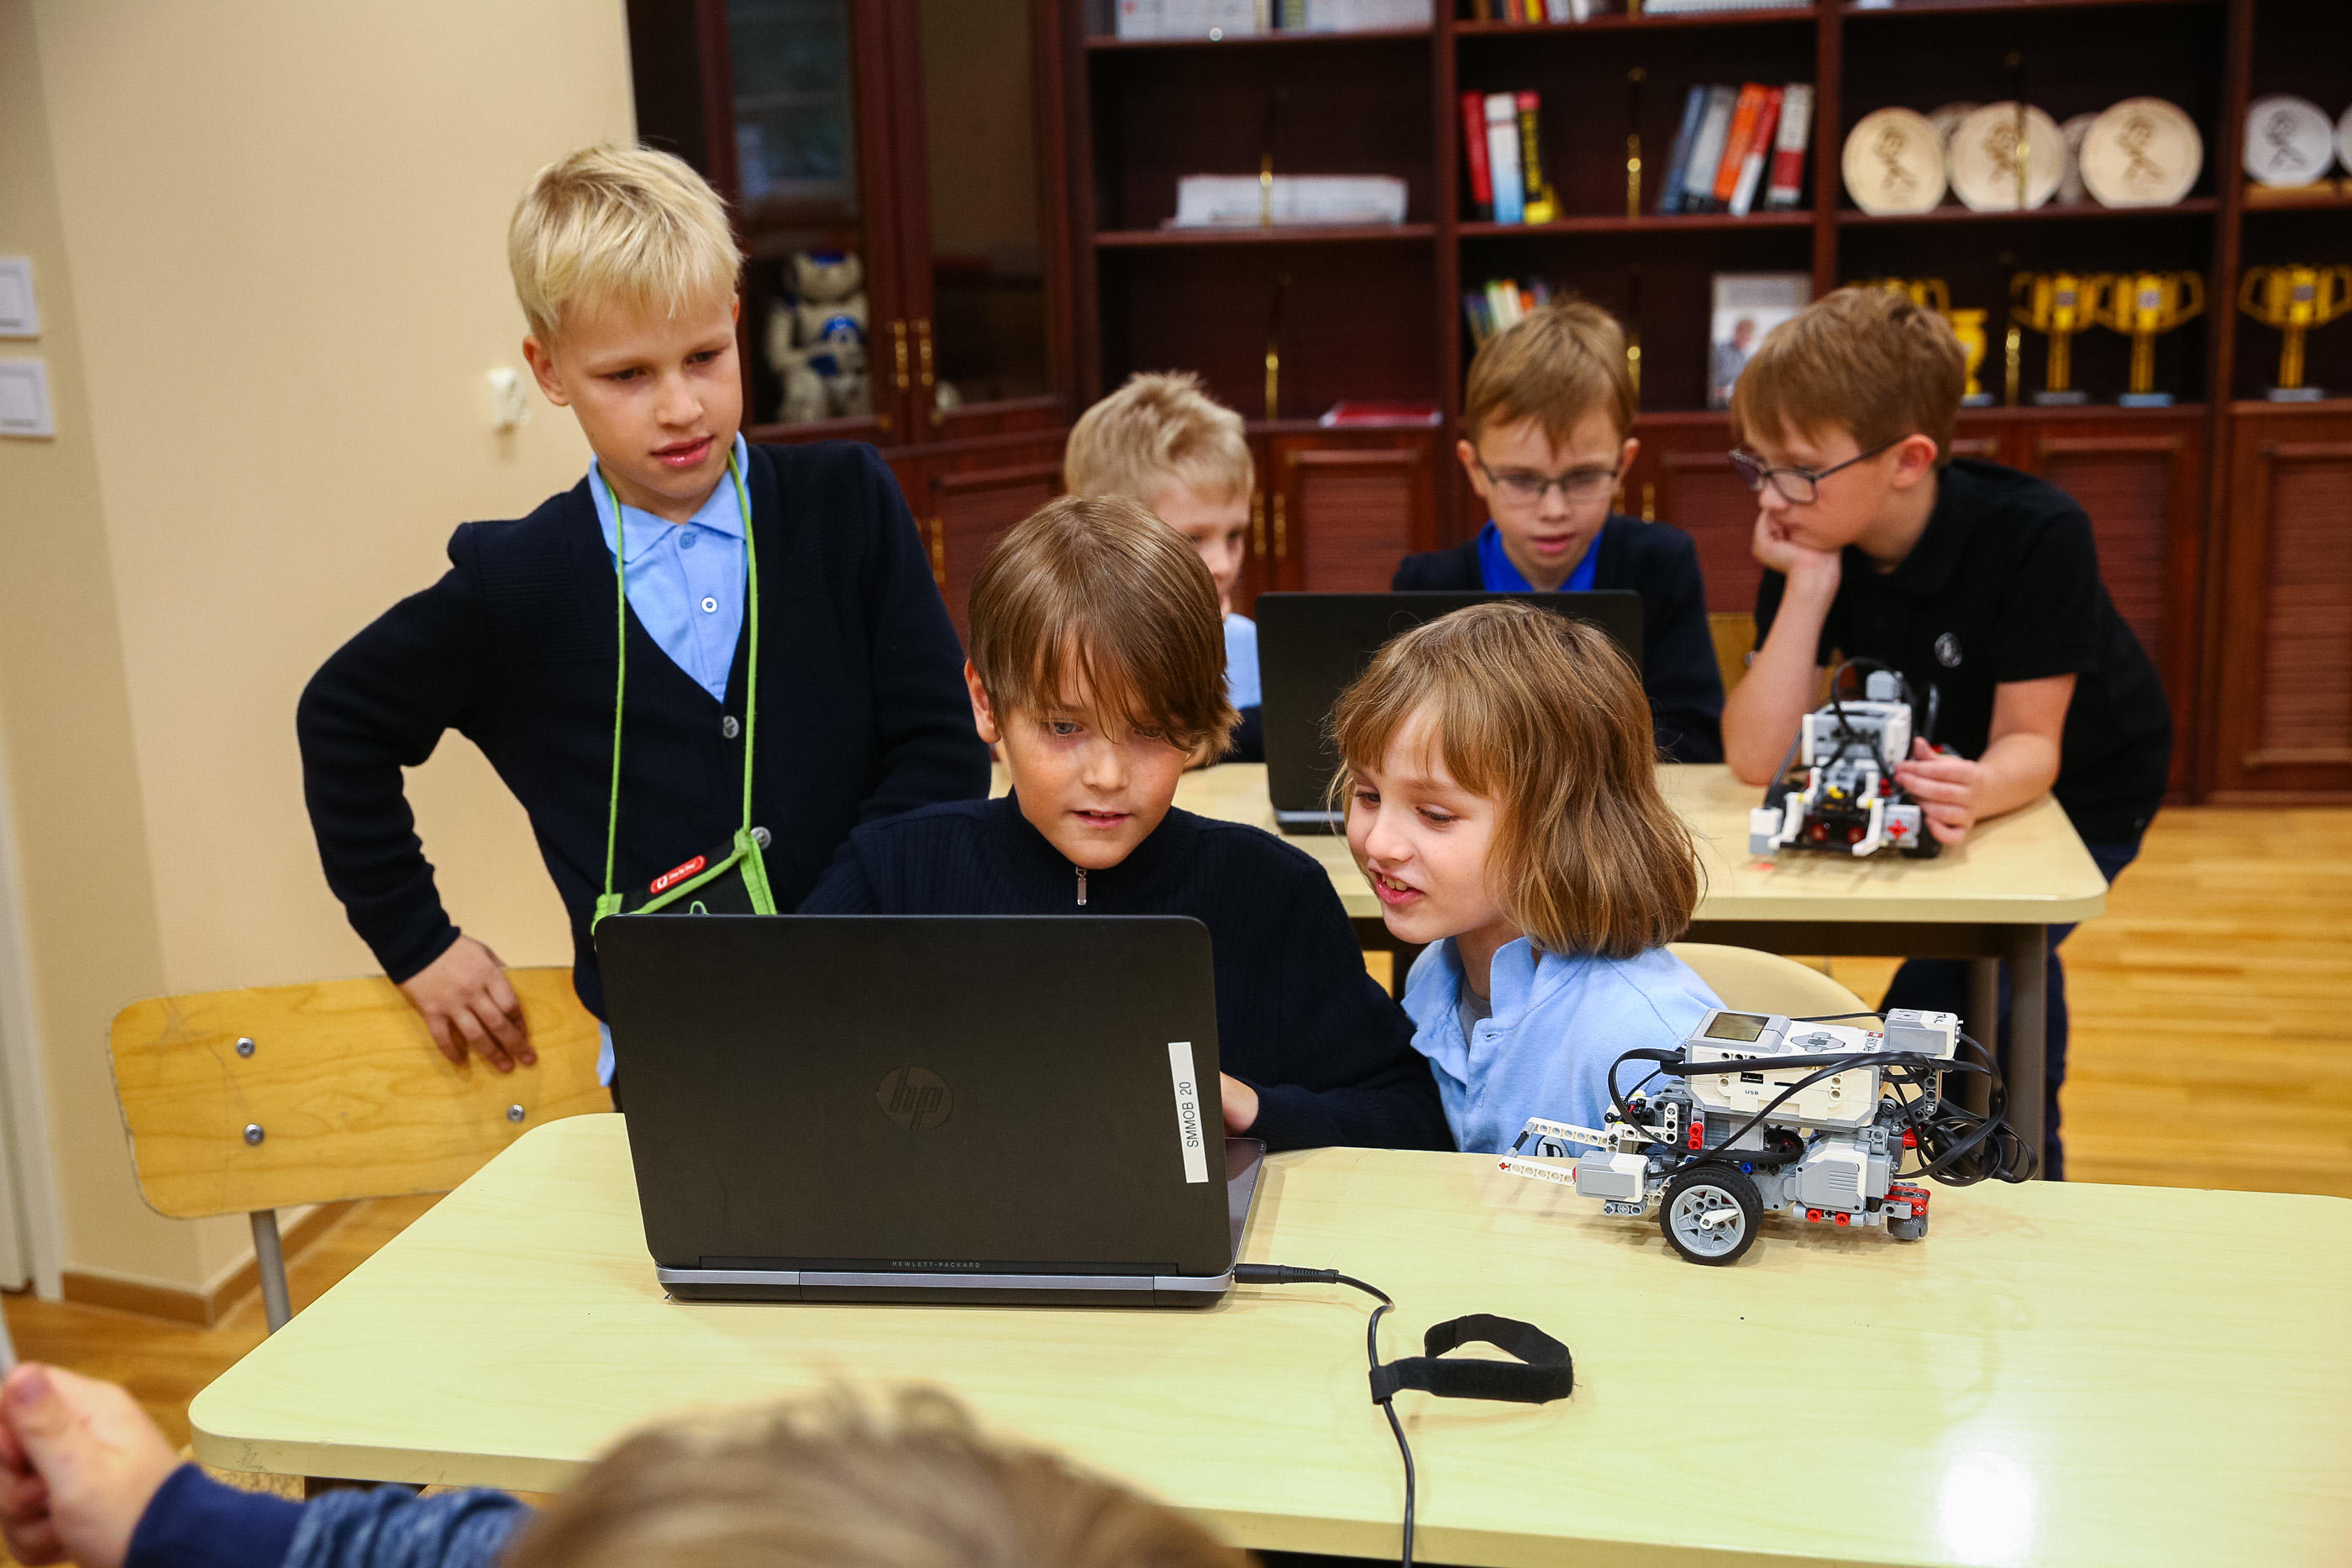 Launch Code After School image 5